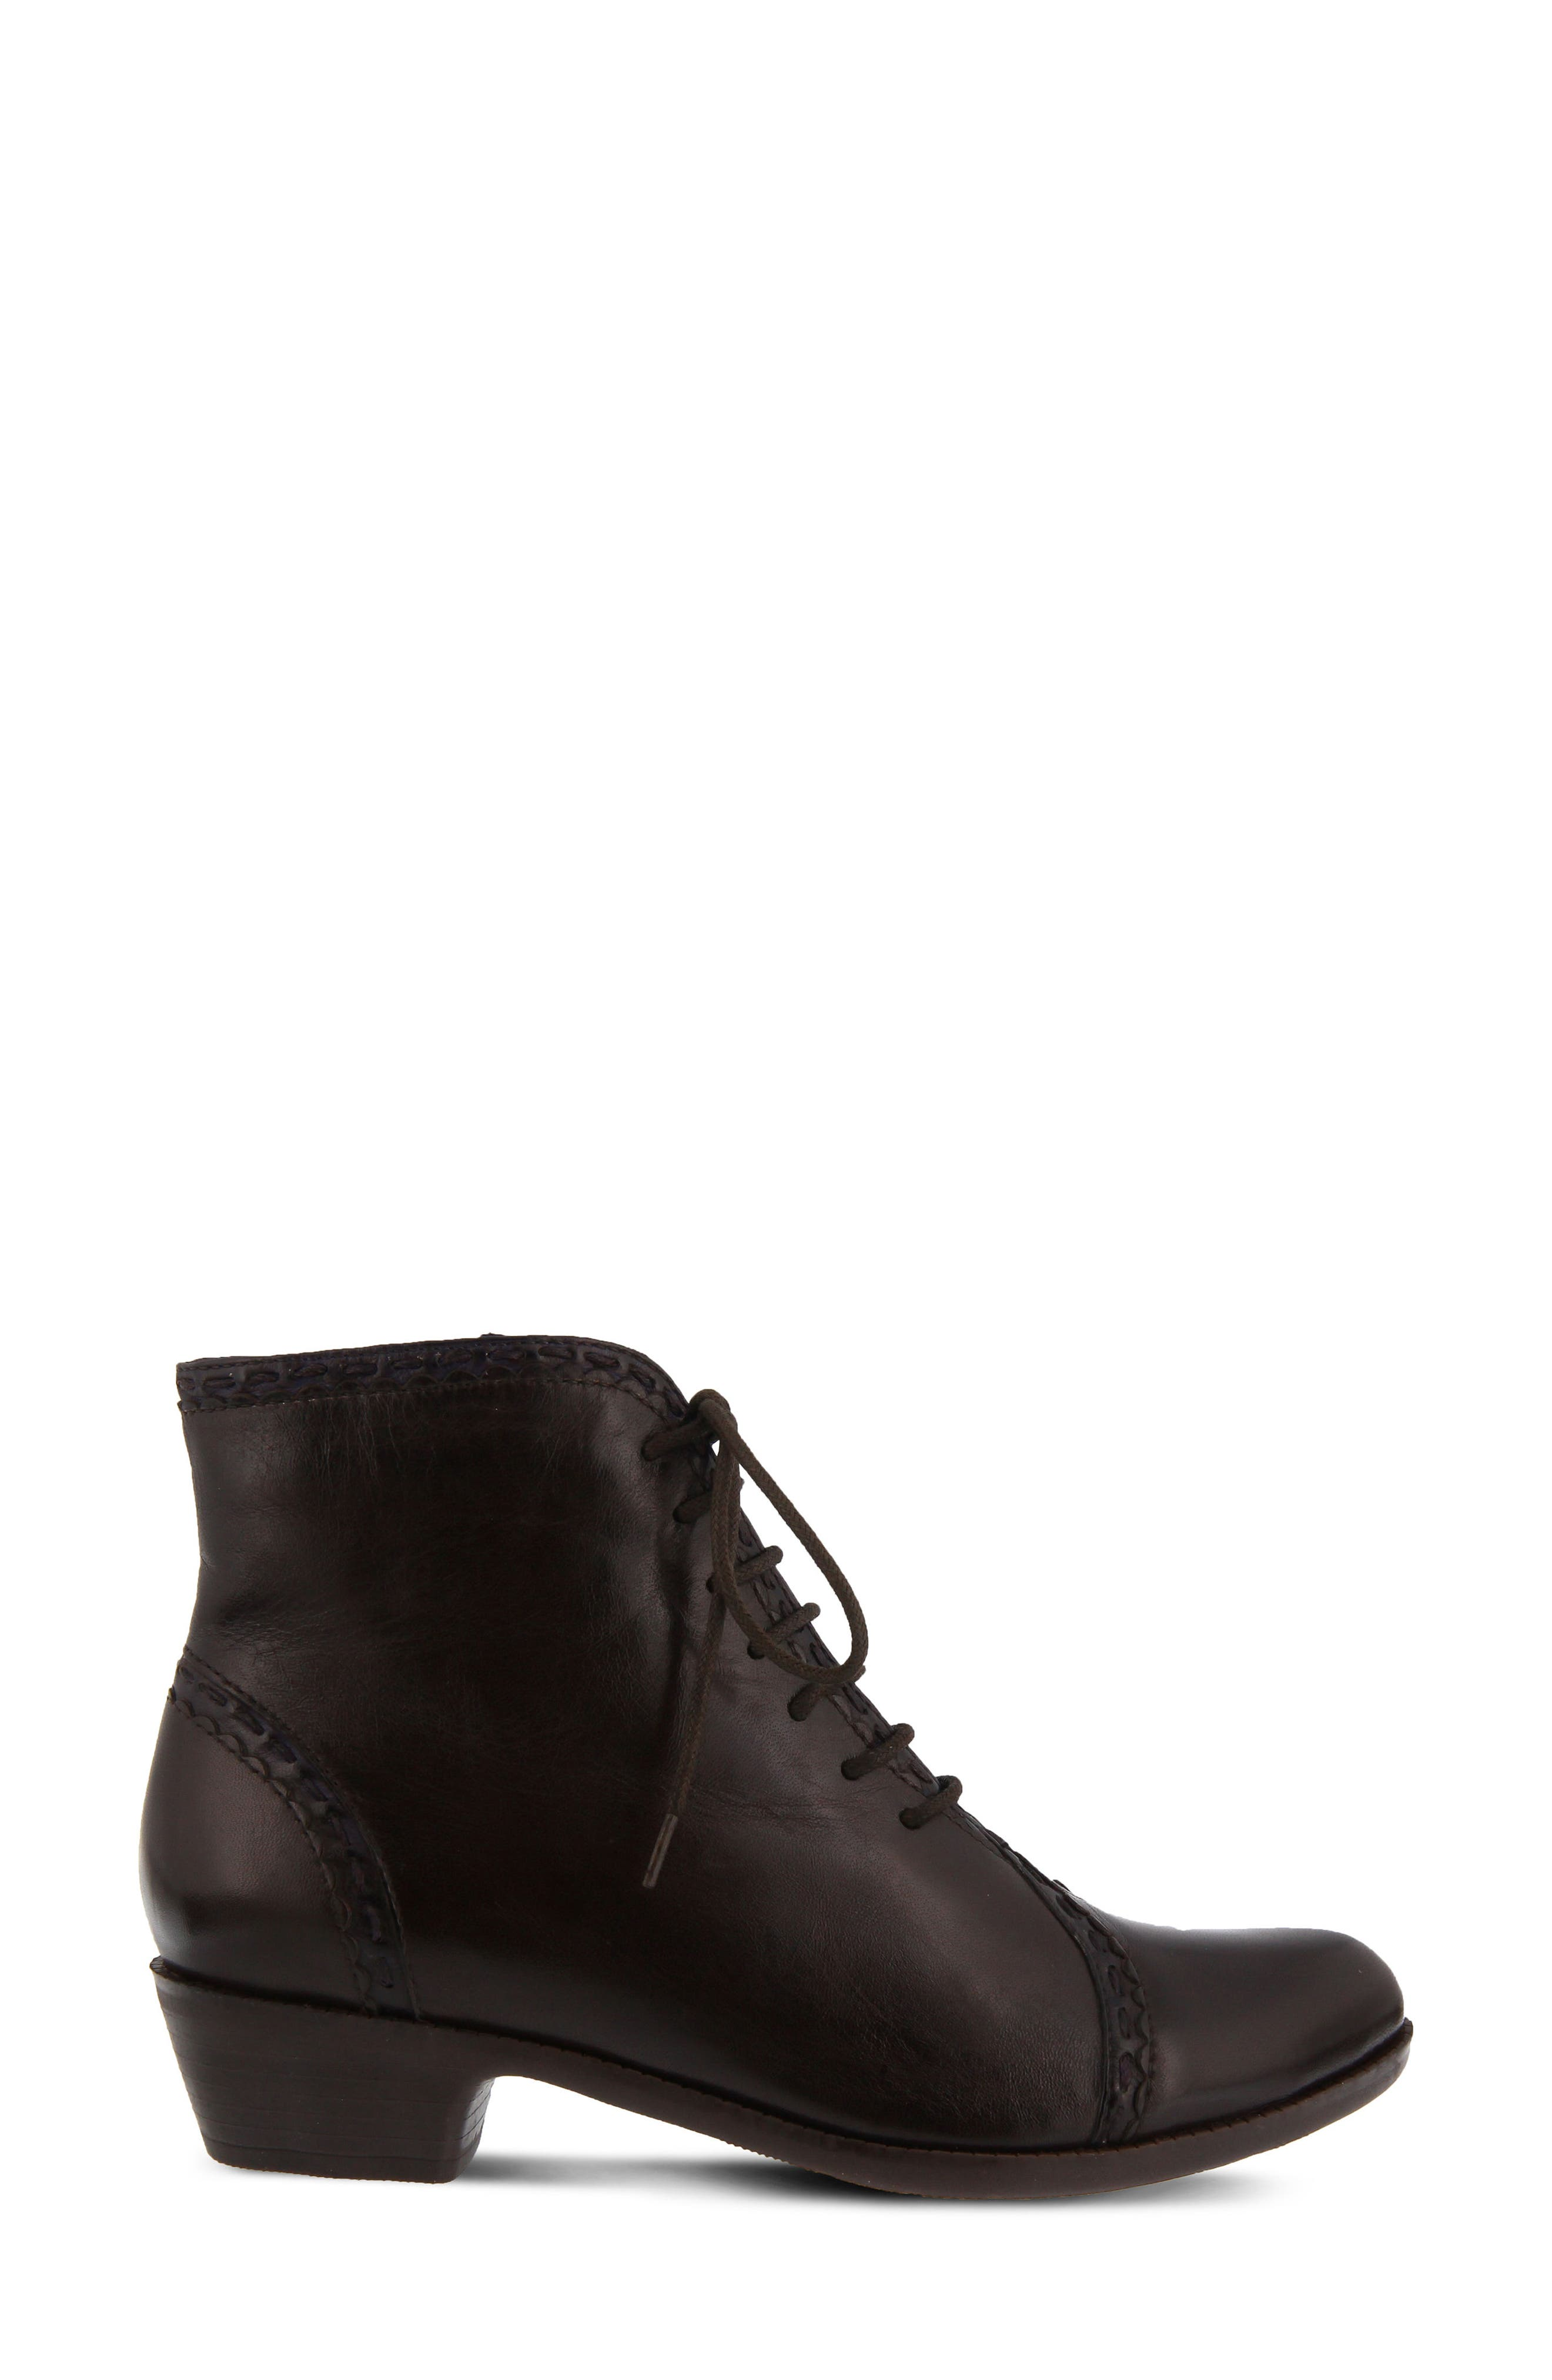 Jaru Lace-Up Bootie,                             Alternate thumbnail 3, color,                             Dark Brown Leather